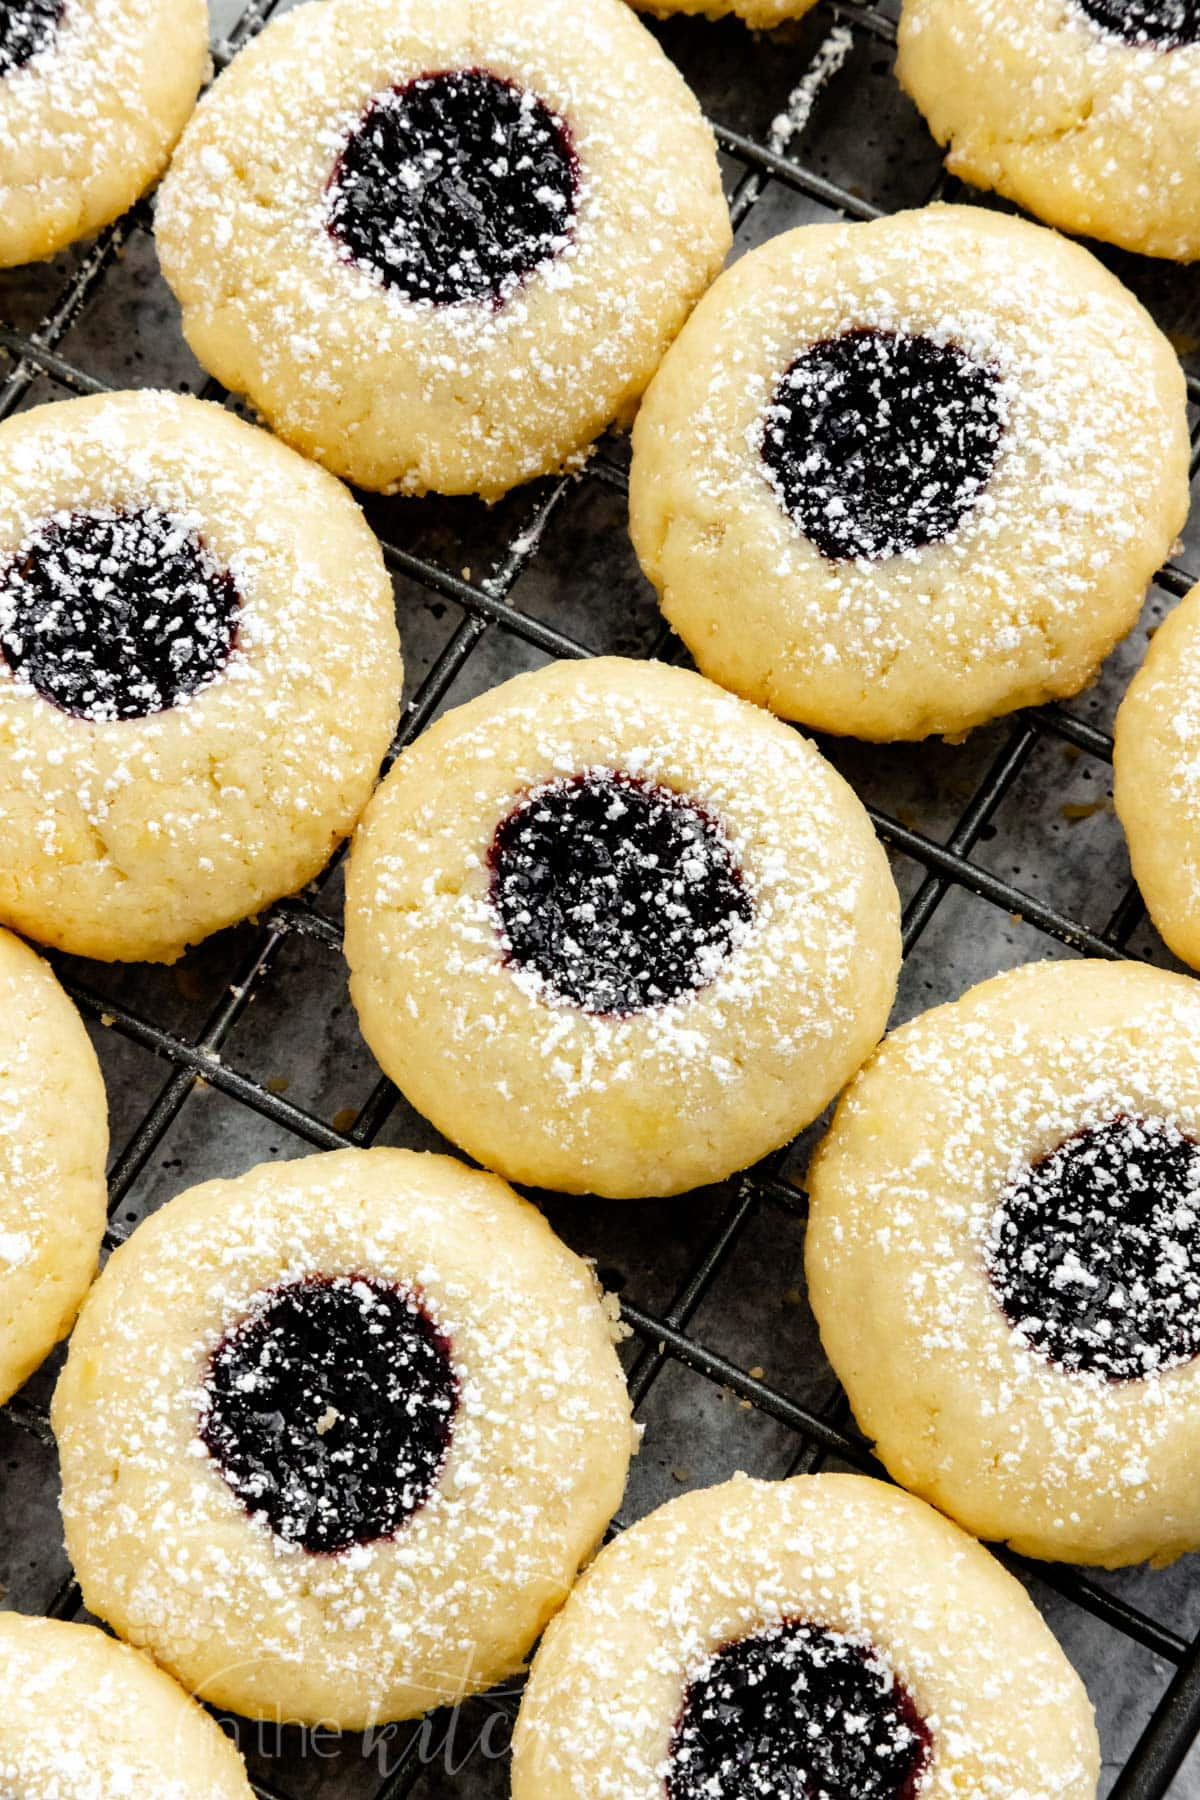 These Jam-Filled Thumbprint Cookies combine soft butter cookies and a sweet jam filling. Use your favorite jelly flavor like blackberry, strawberry, raspberry or other favorites. Add a light dust of powdered sugar for extra flair and these cookies bound to disappear off cookie platters fast. #thumbprintcookies #cookies #jamcookies #olgainthekitchen #dessert #homemade